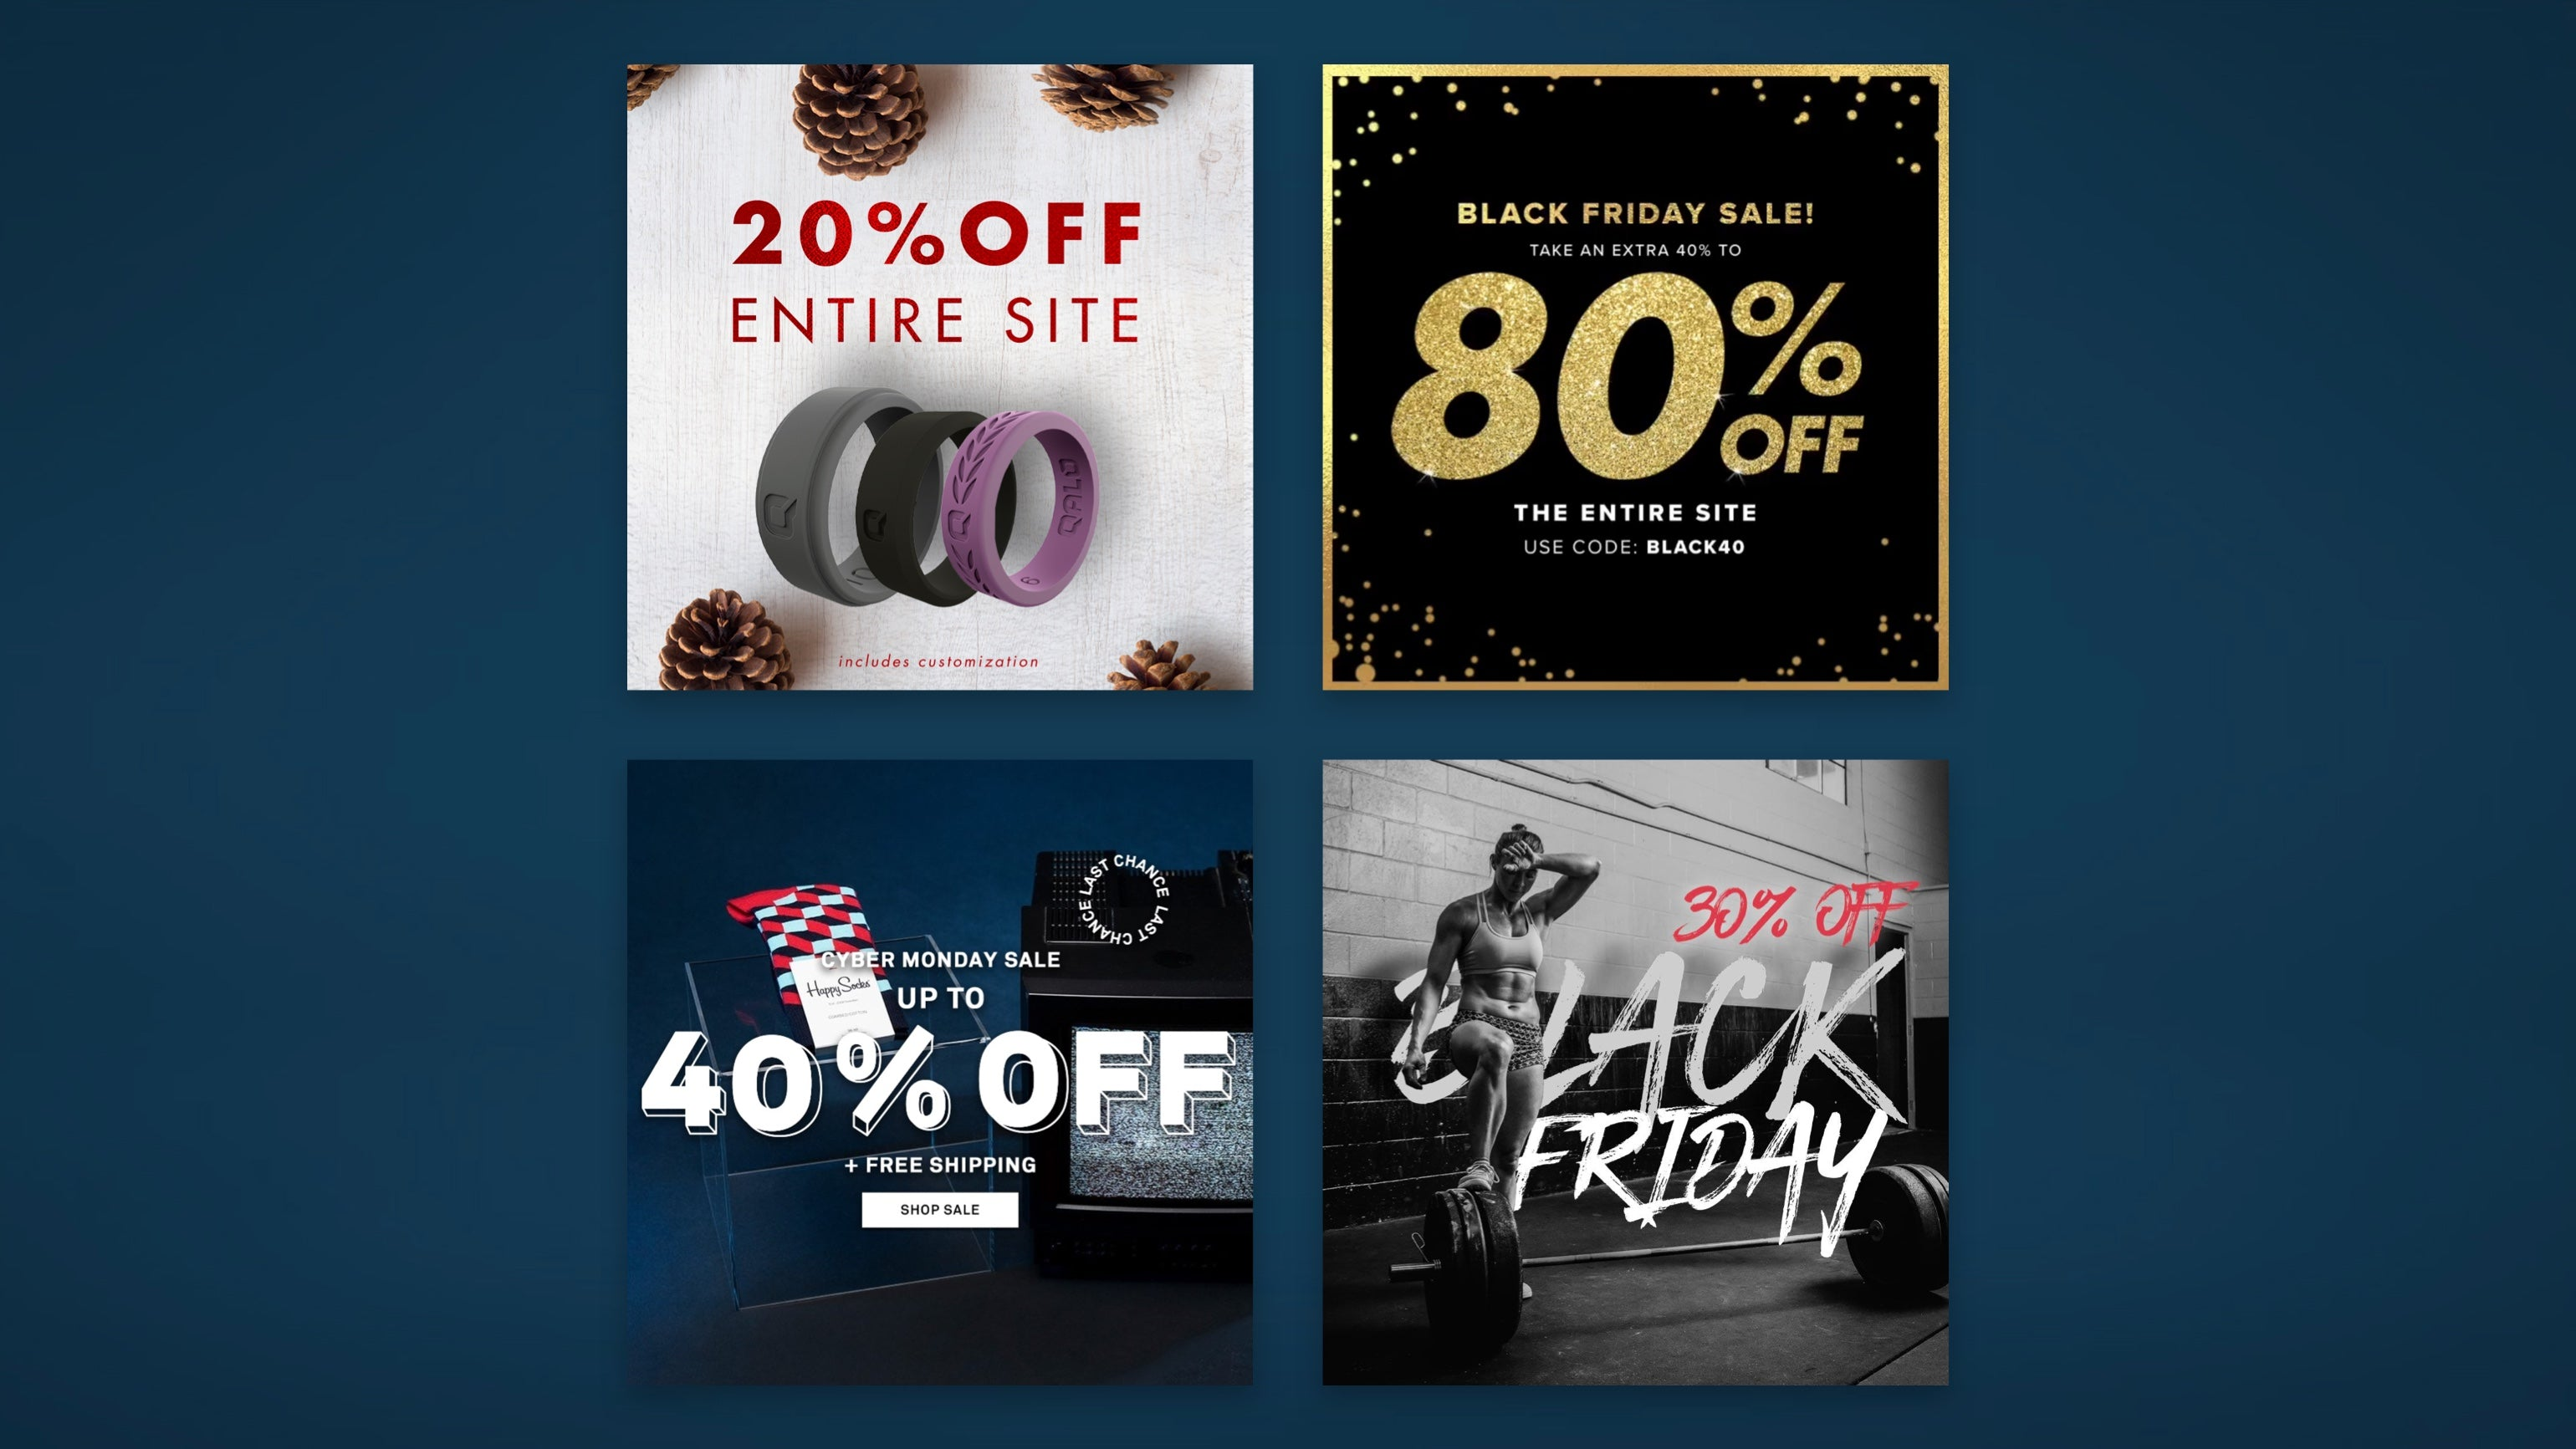 Black Friday offer ads on social